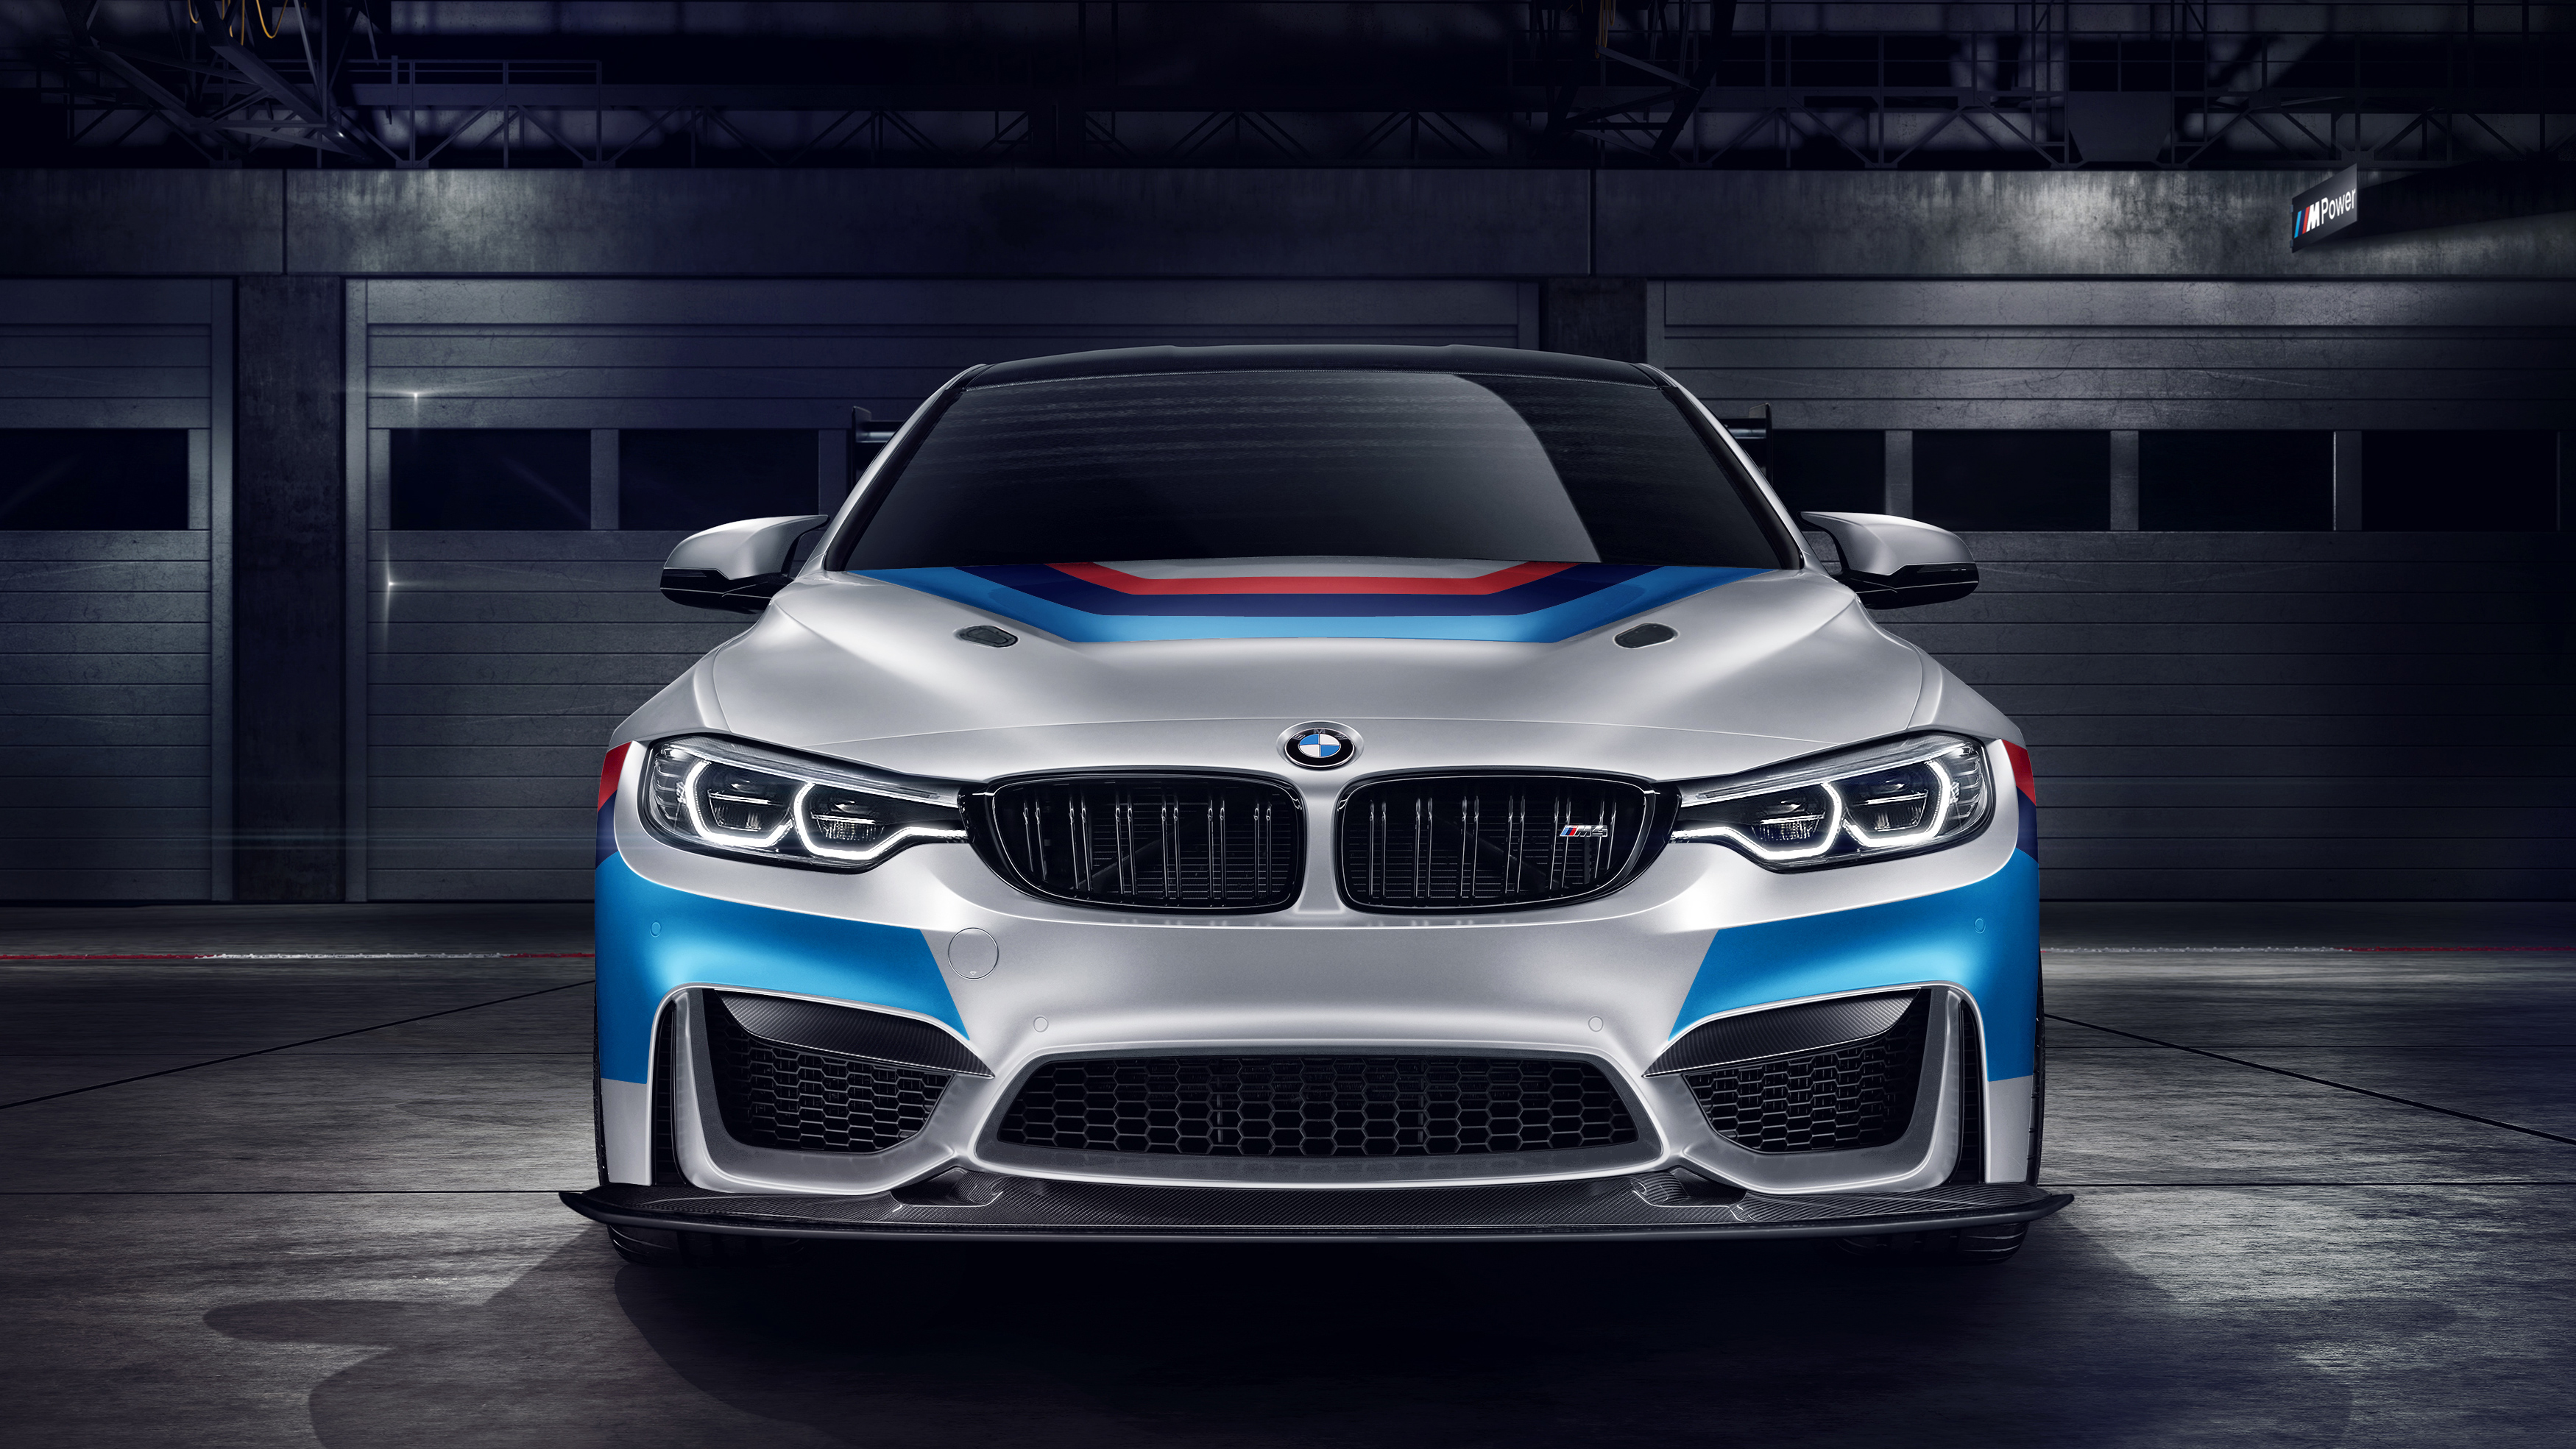 Bmw M4 Gt4 Competition Package 4k Wallpaper Hd Car Wallpapers Id 8477